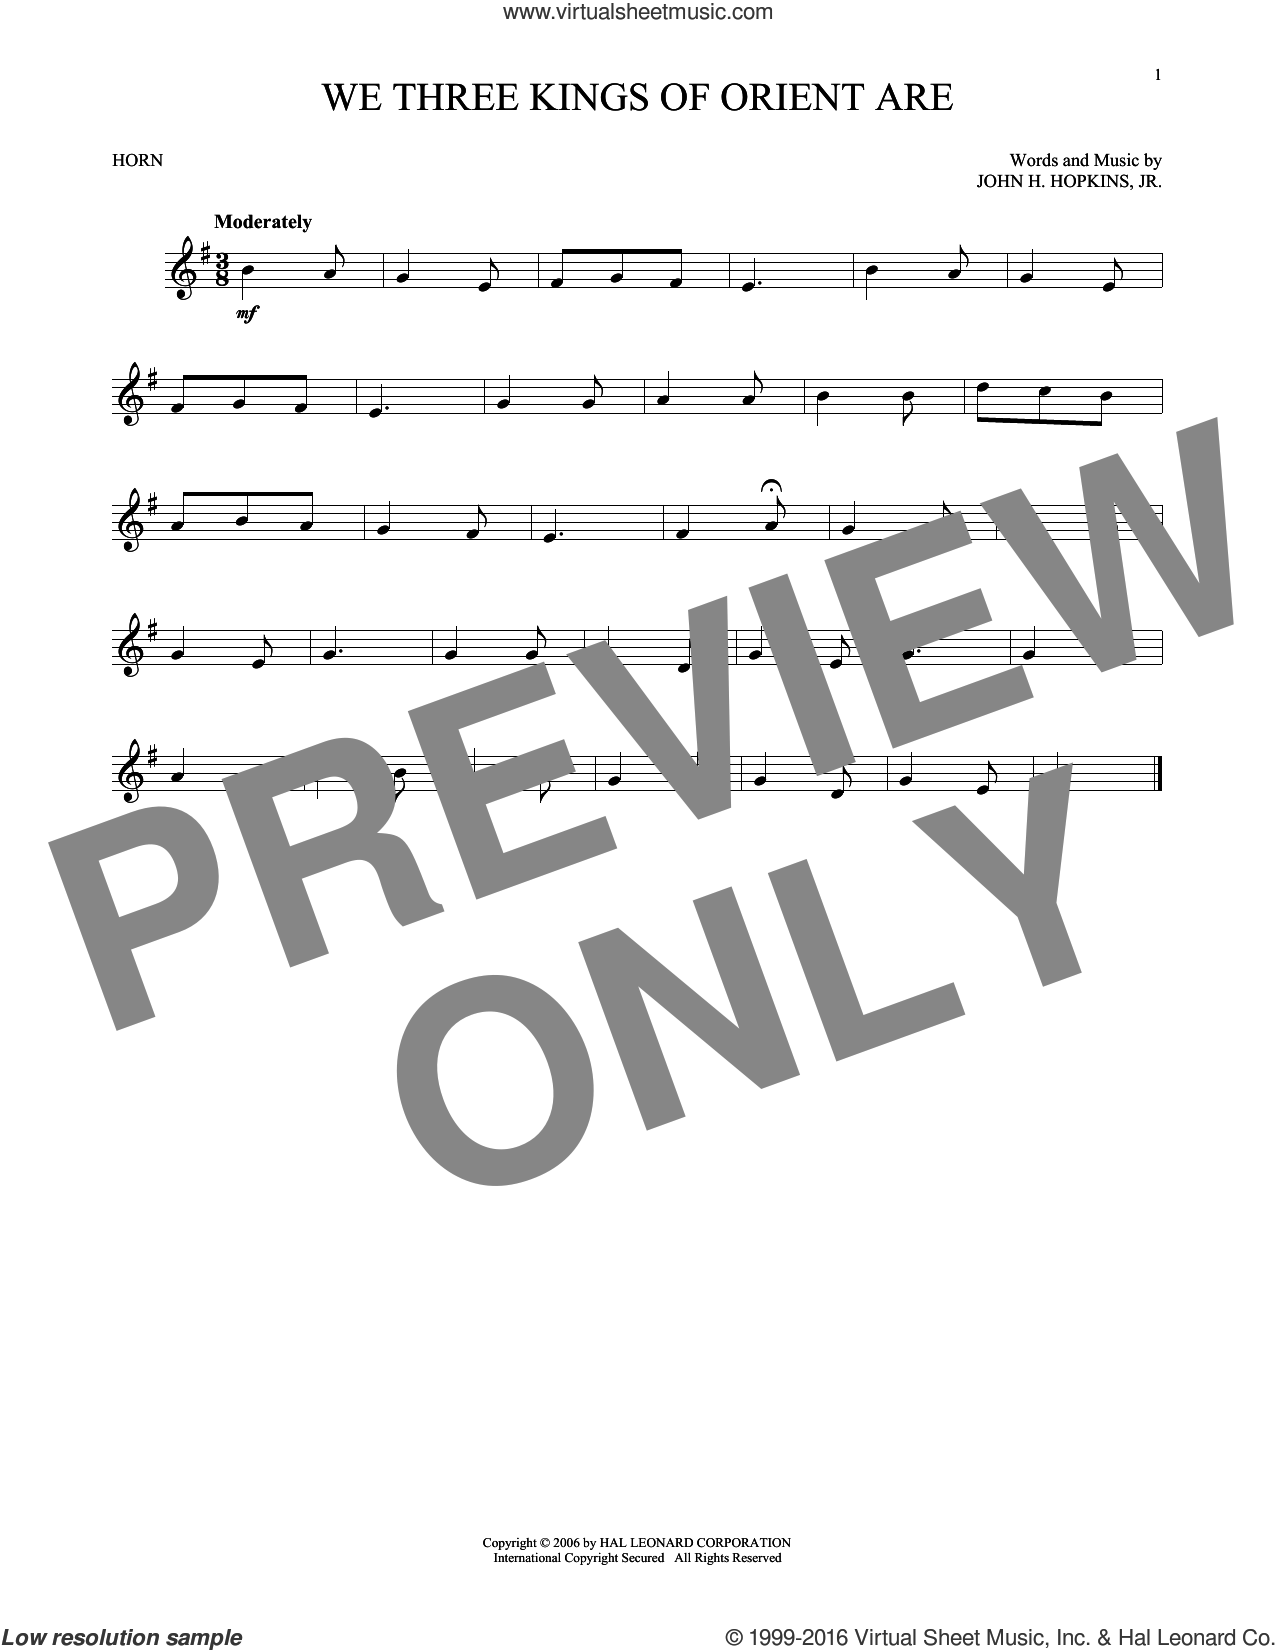 We Three Kings Of Orient Are sheet music for horn solo by John H. Hopkins, Jr., intermediate skill level